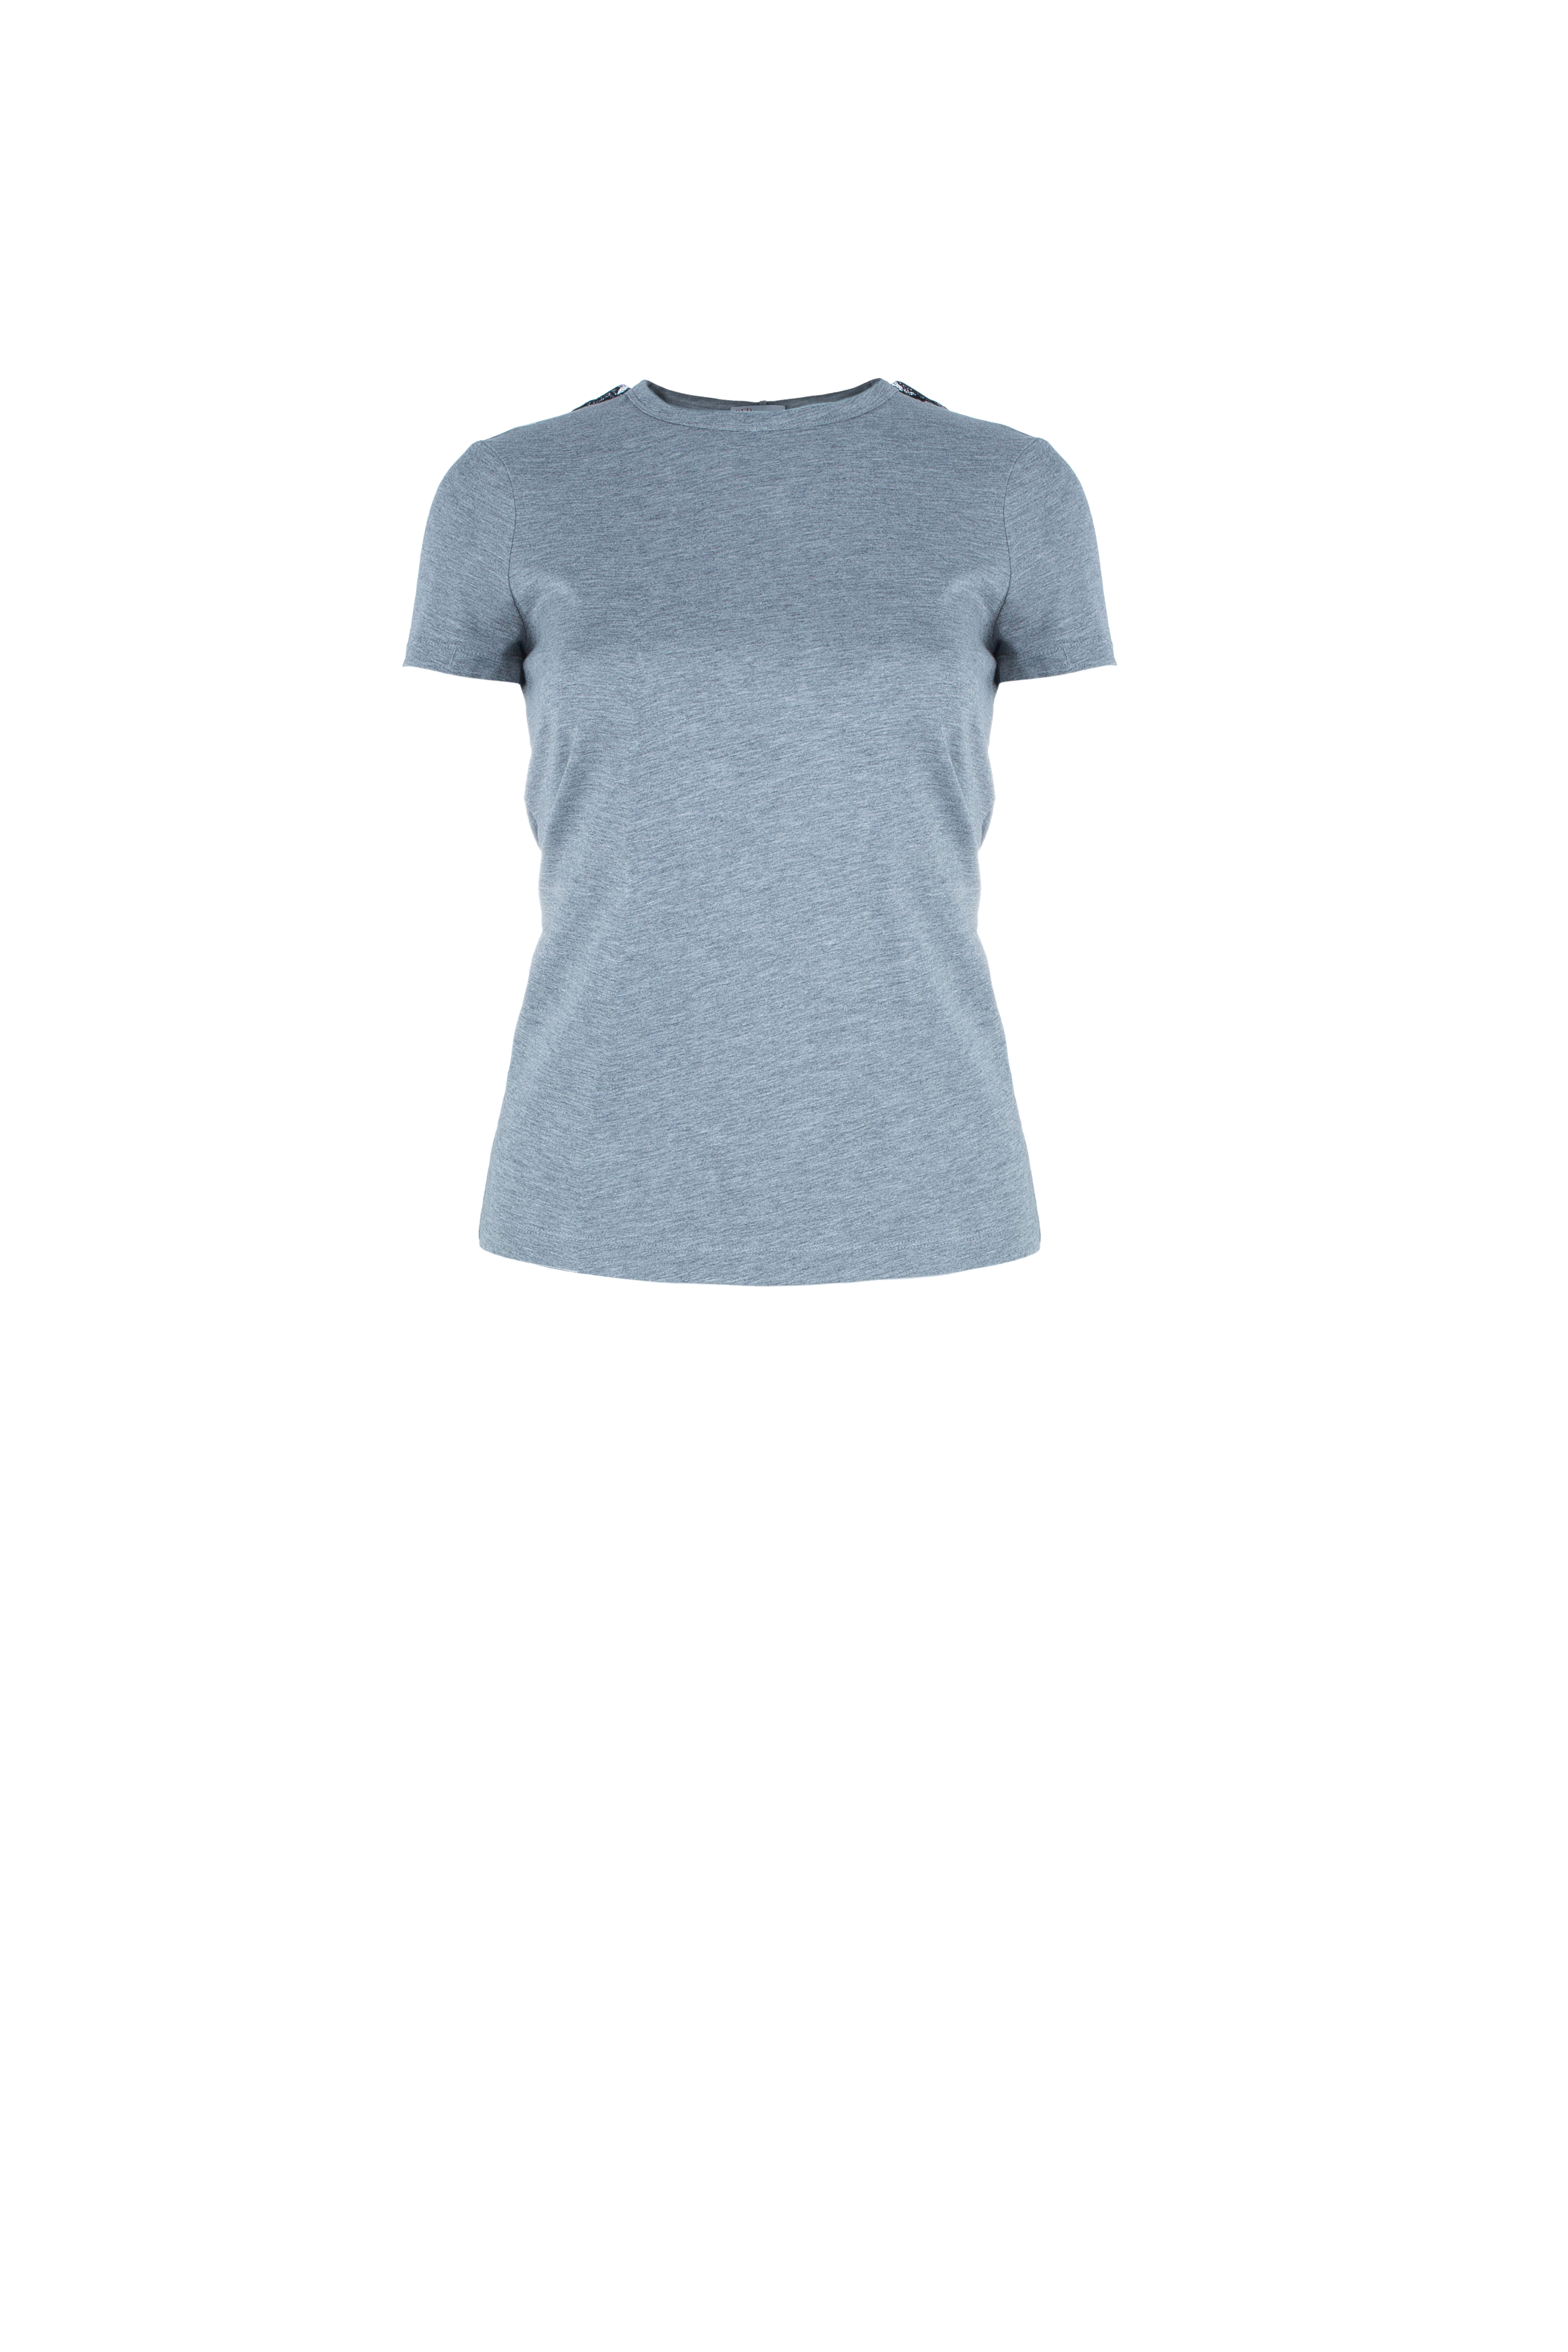 RED Valentino Grey Bow Top XS